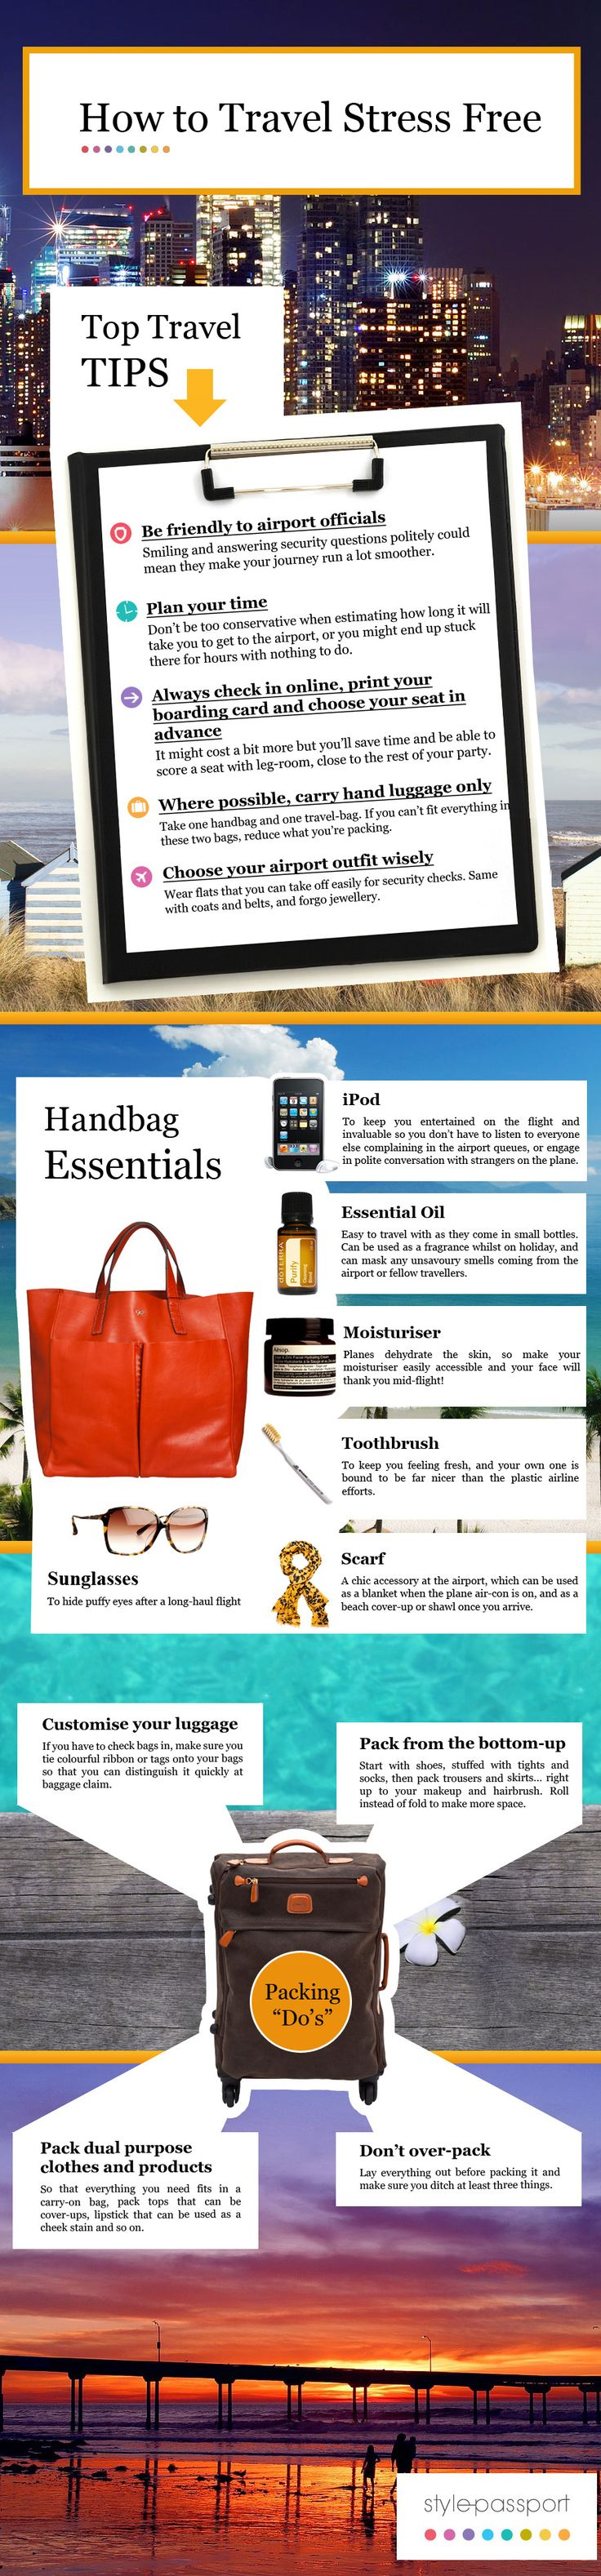 Stress Free Travel Packing Tips